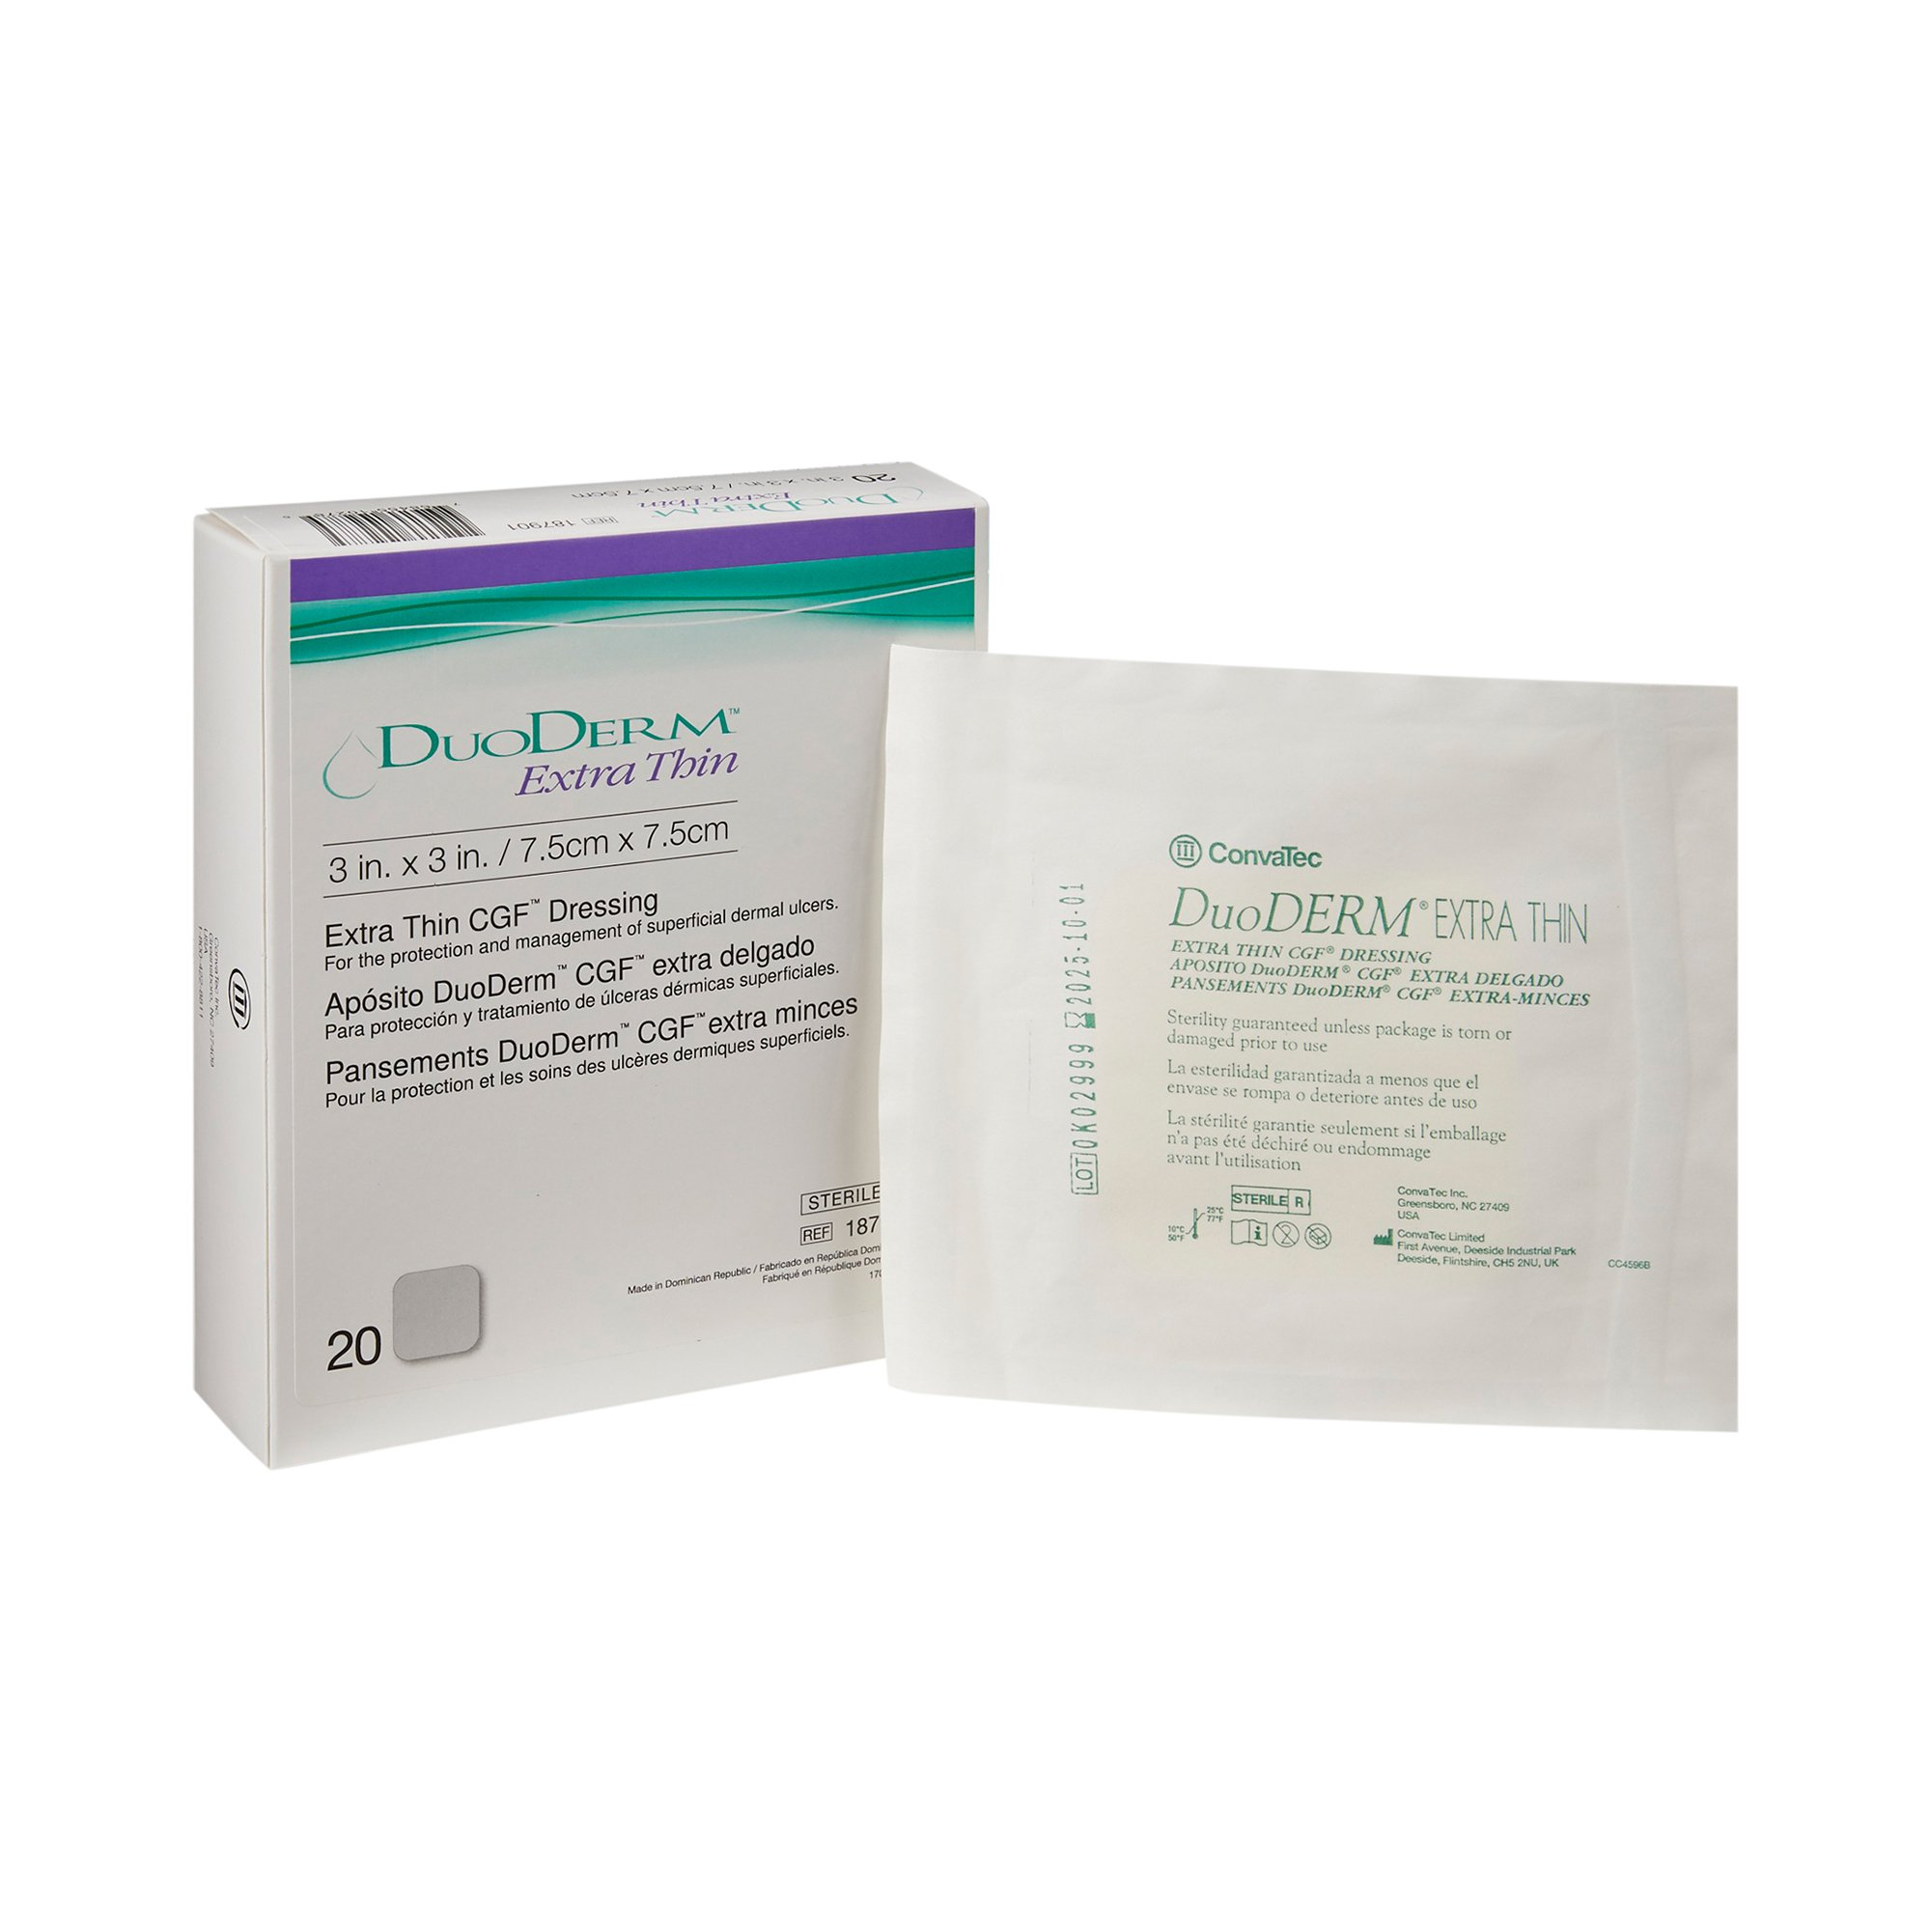 """DuoDERM Extra Thin Hydrocolloid Dressing, 3"""" X 3"""", Square Sterile, 187901, Box of 20"""